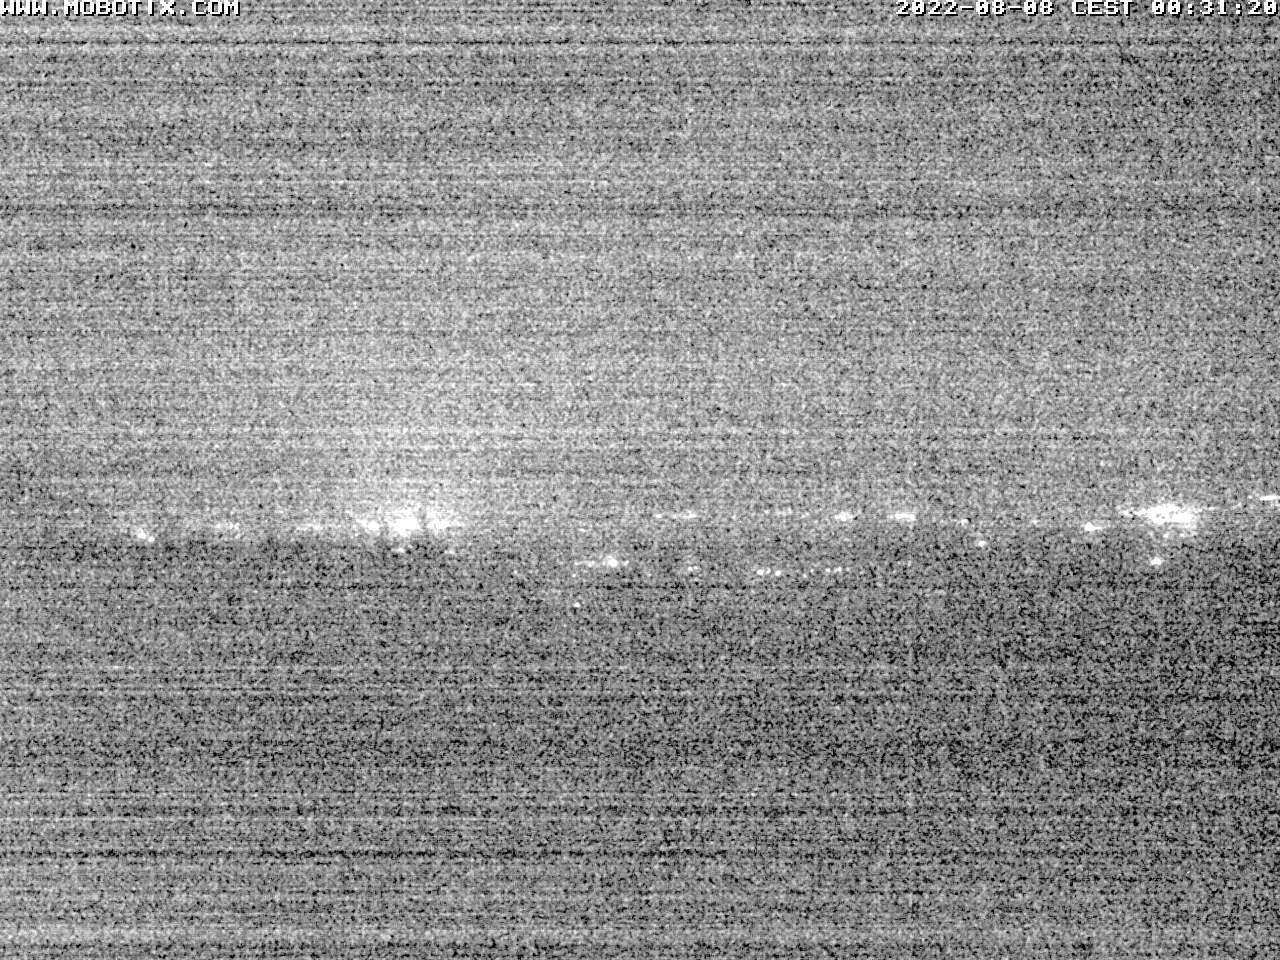 almgasthof webcam 1